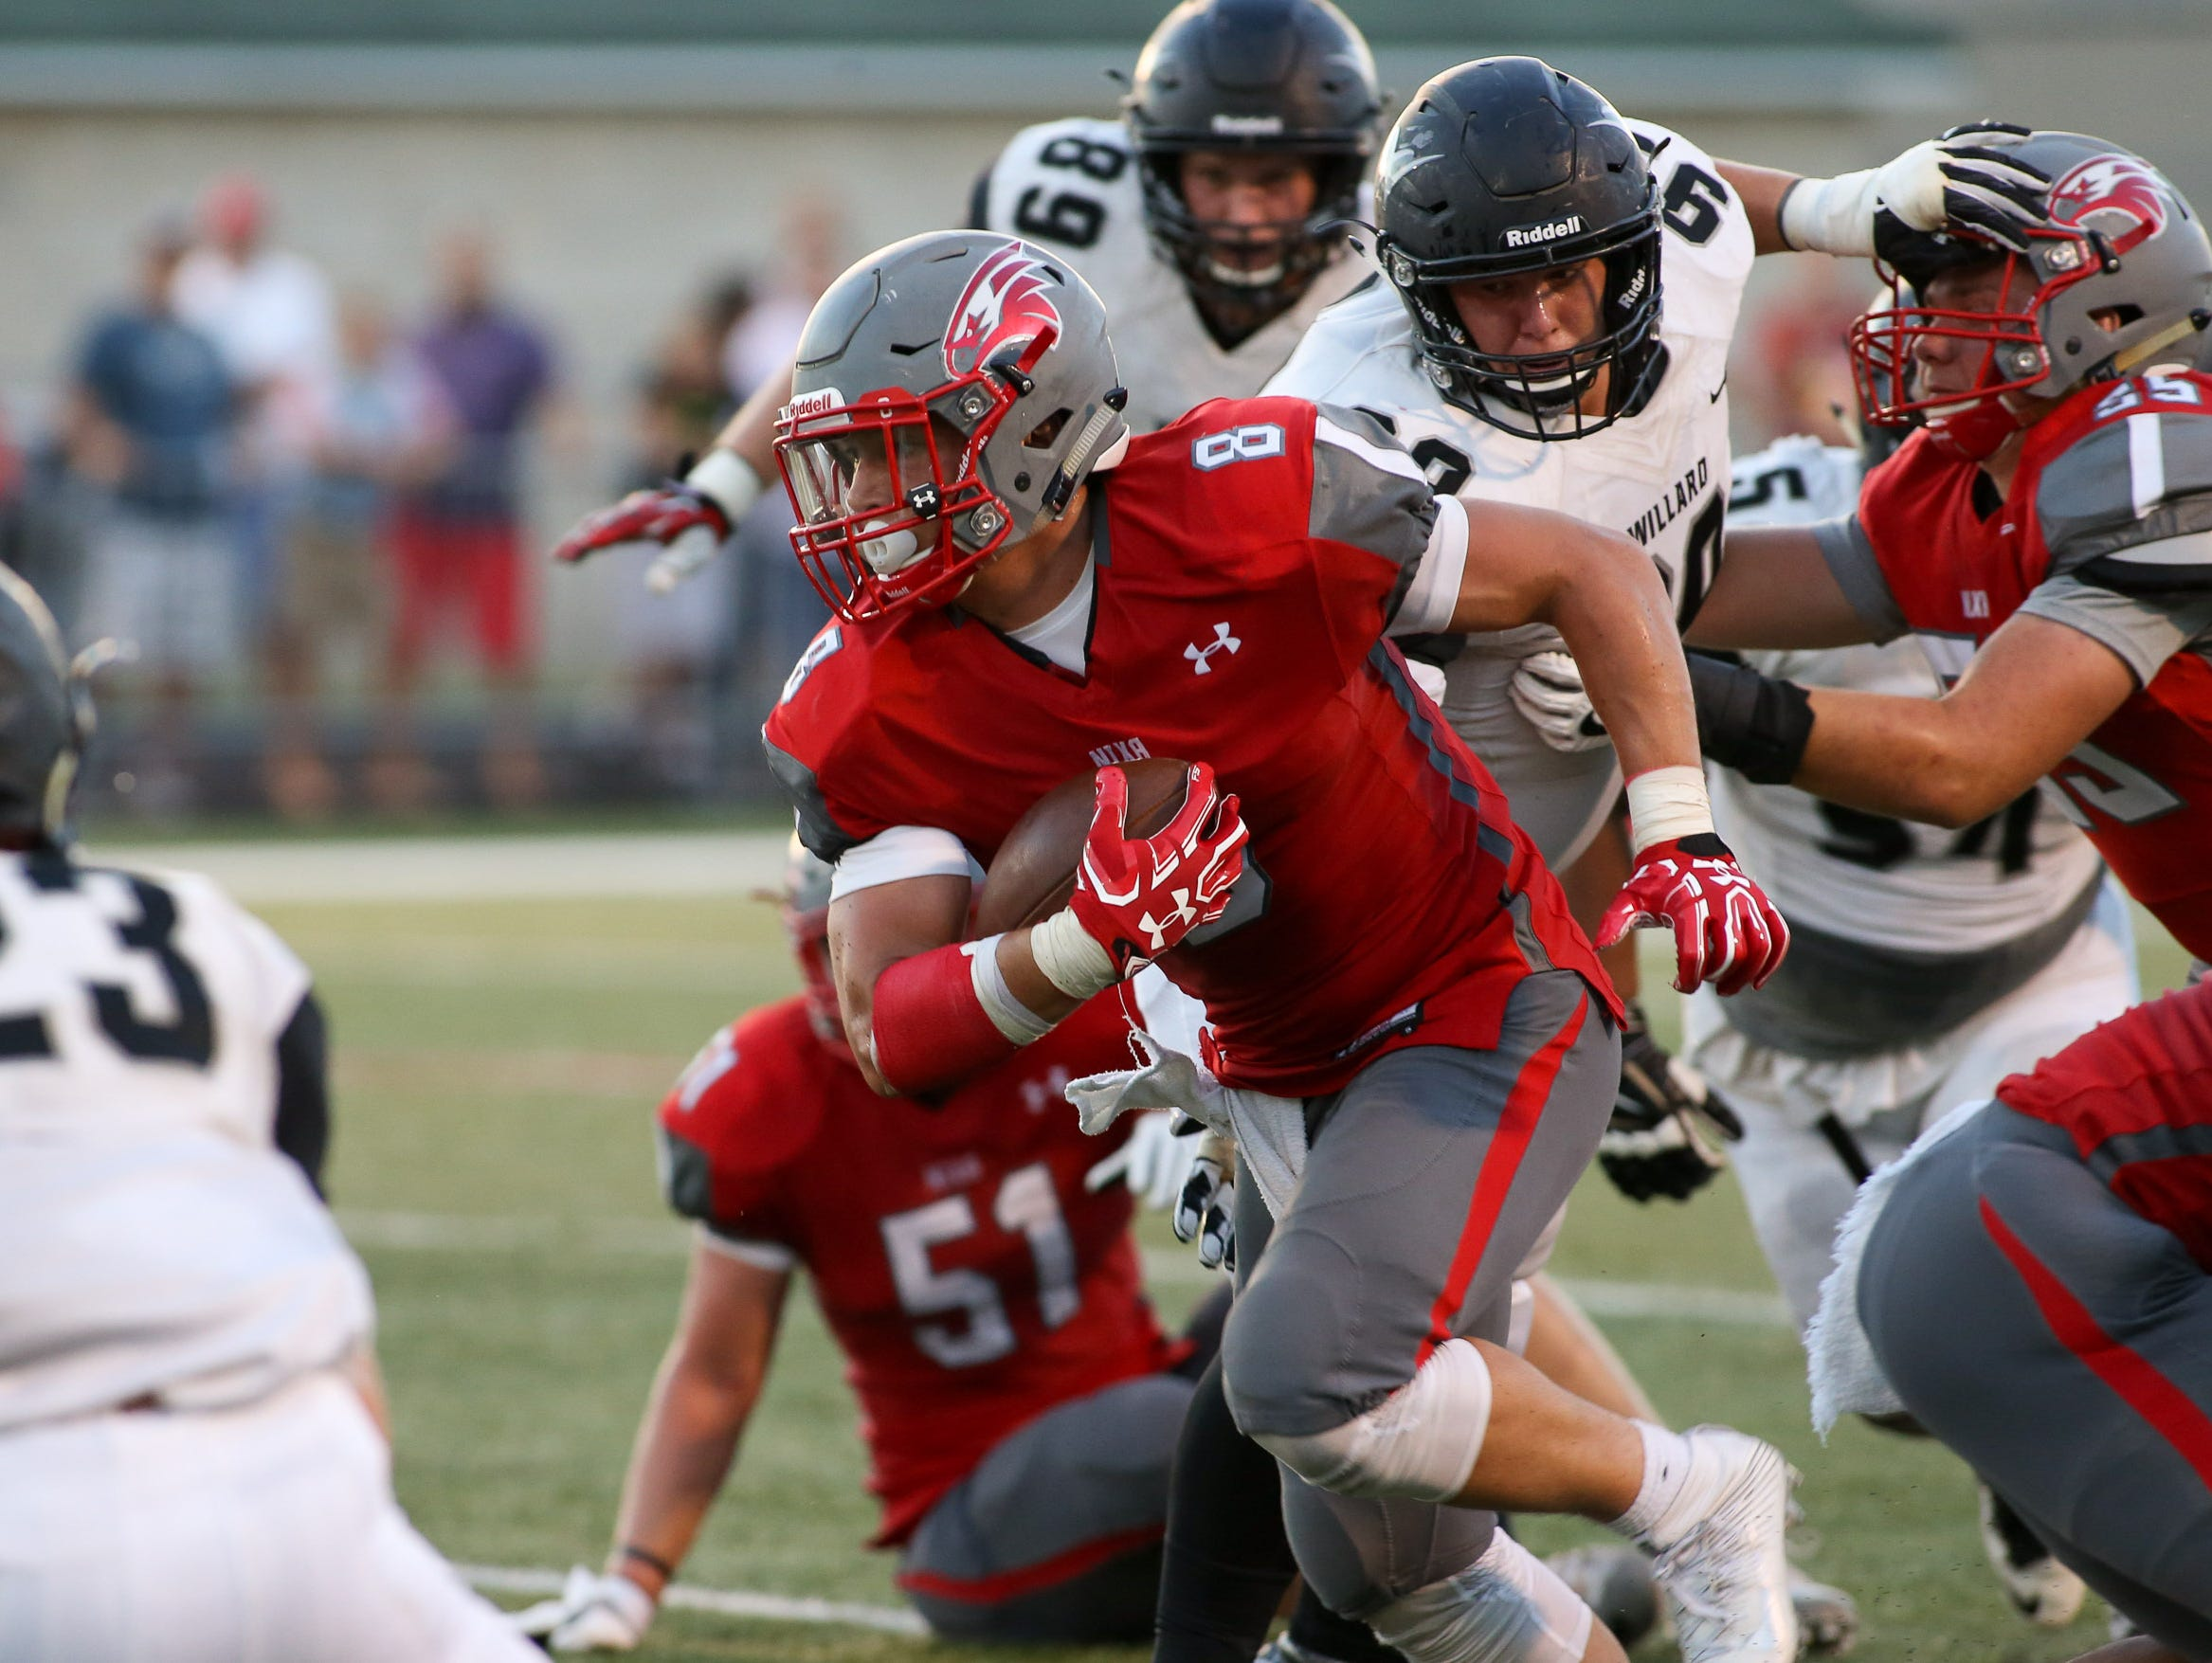 Nixa High School's Hayden Young tries to get away from Willard High School's defense Friday, August 19, 2016. Jason Connel / For the News-Leader